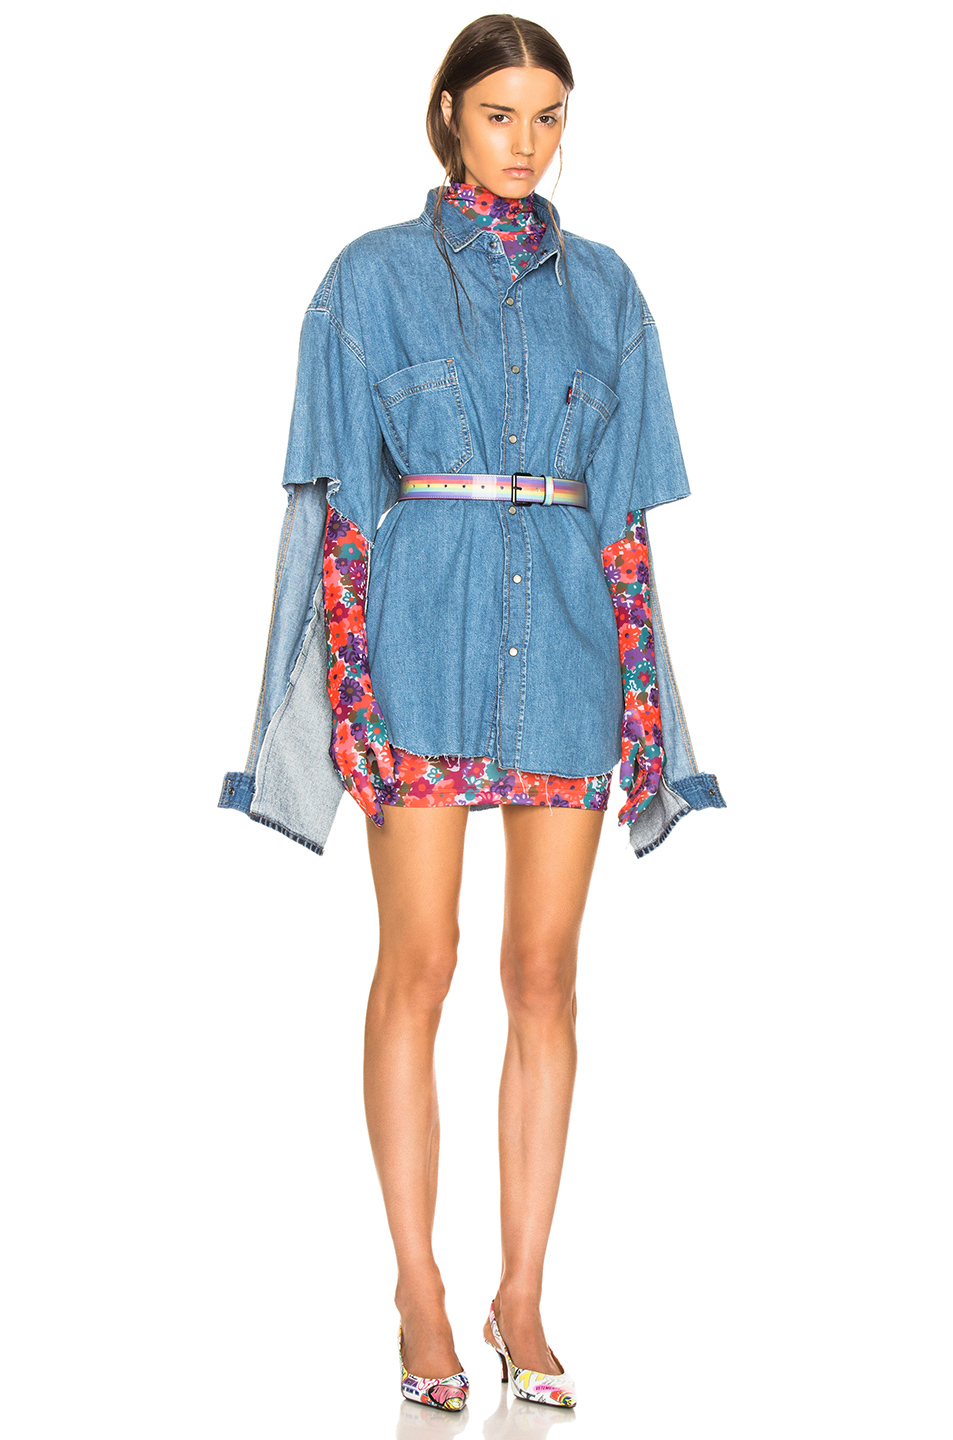 ae1a3257a46 VETEMENTS Oversized Denim Shirt  VETEMENTS Oversized Denim Shirt ...